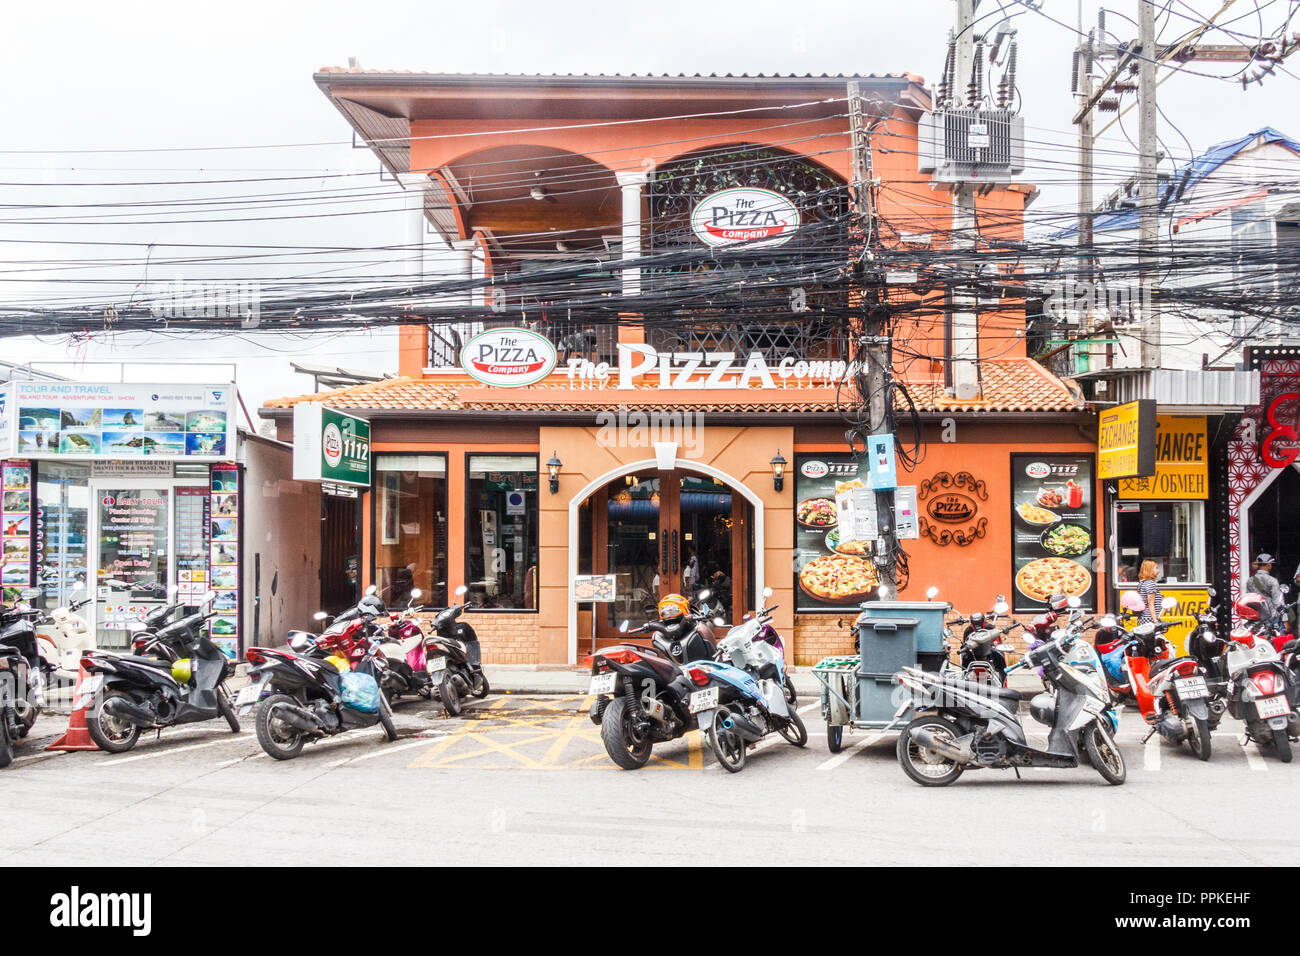 Patong, Thailand - 9th August 2018: The Pizza Company restaurant. The eating place is part of a chain serving and delivering pizzas. - Stock Image